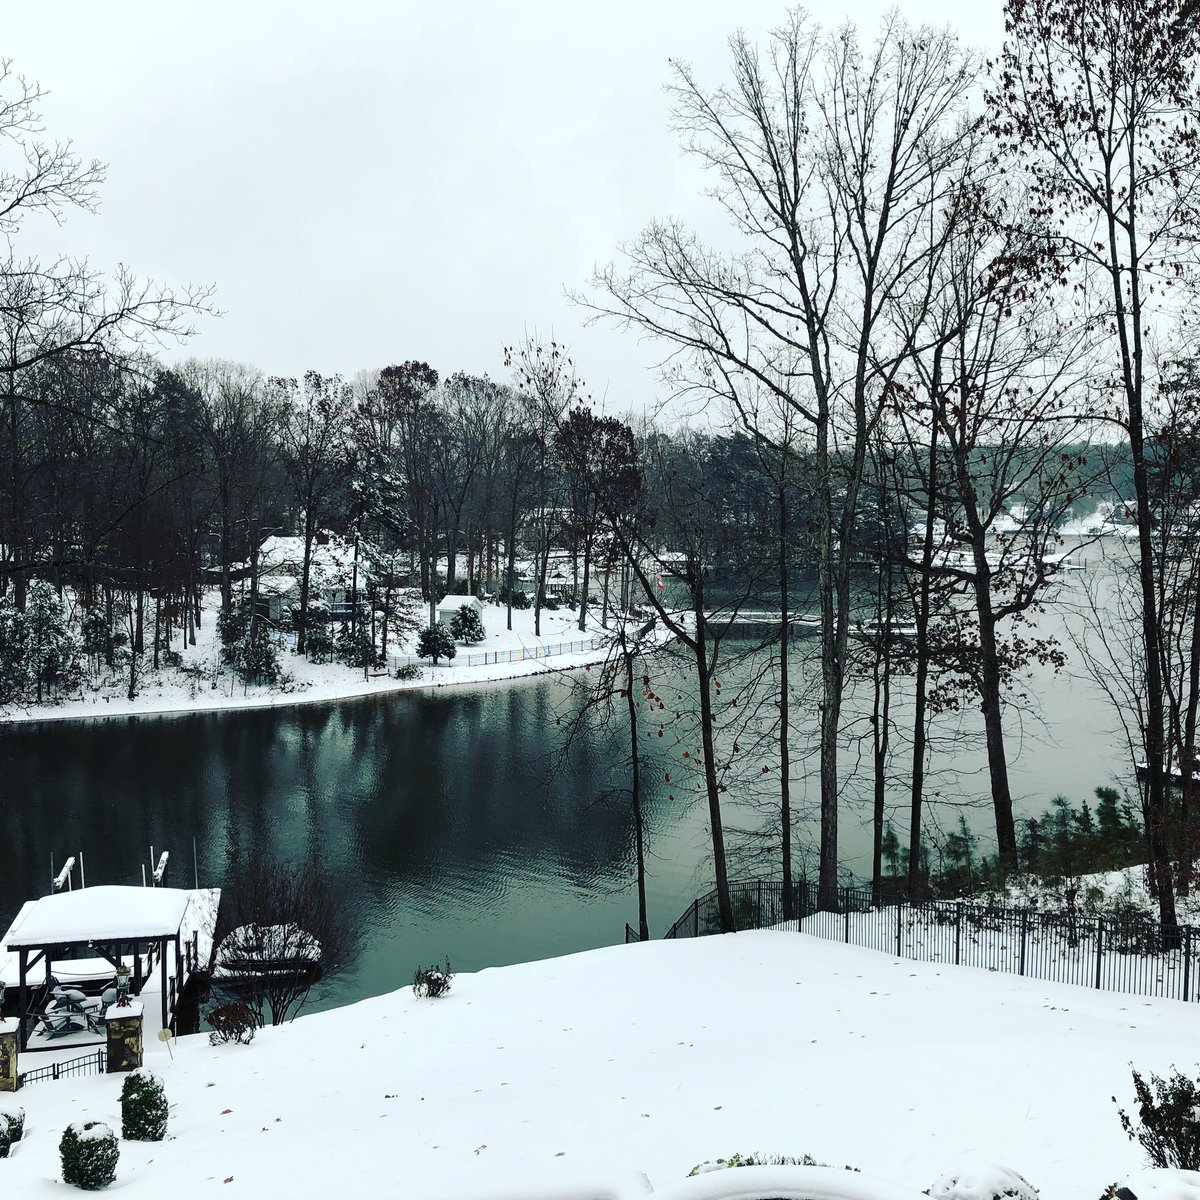 Love how the snow makes the scenery look.